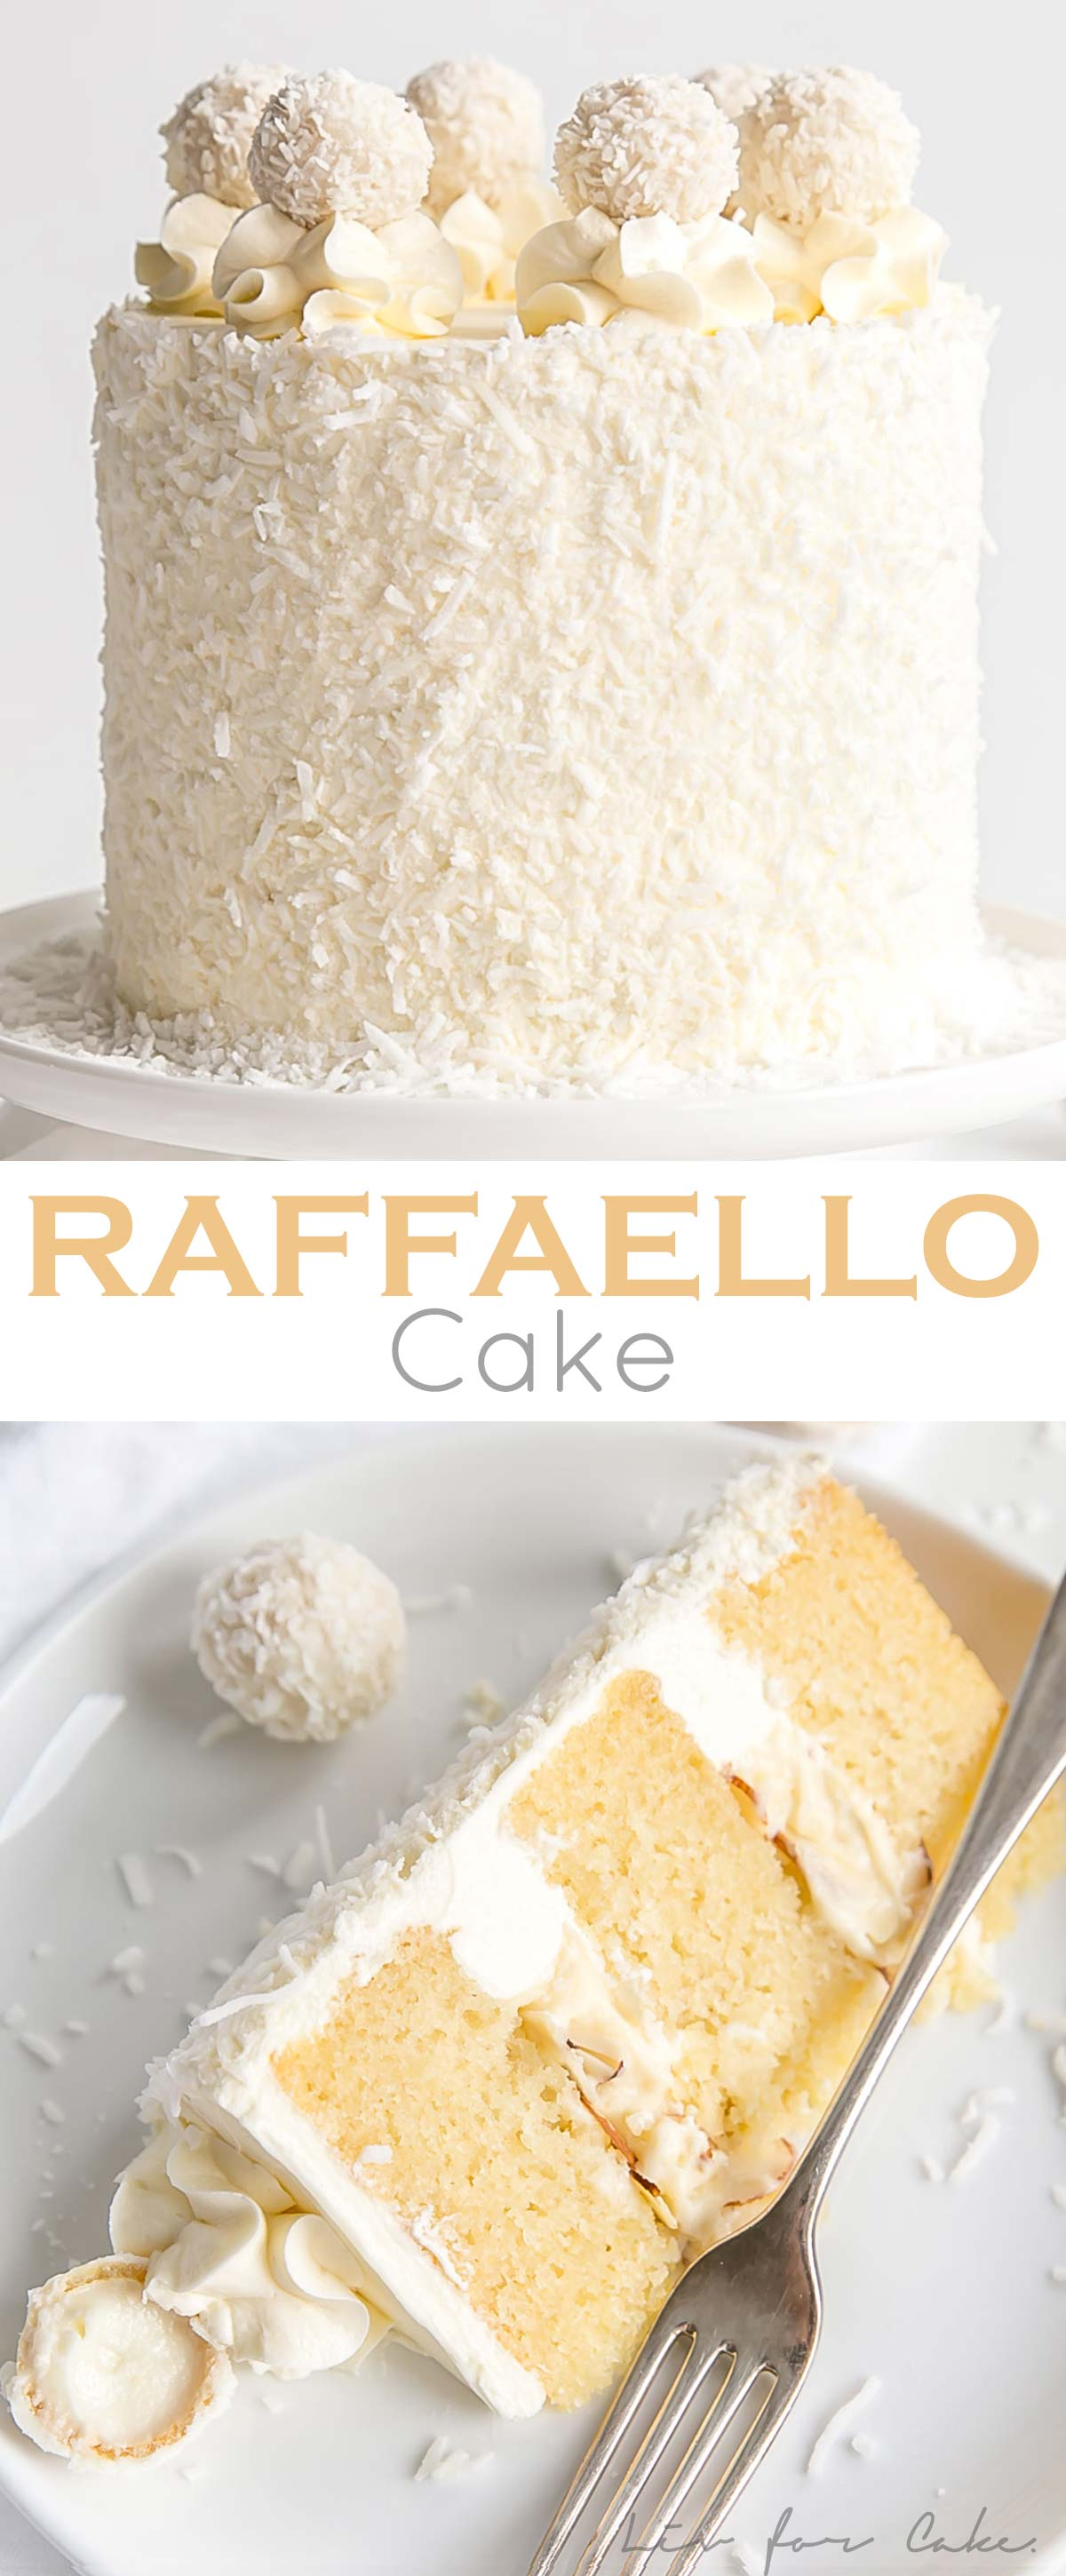 This Raffaello Cake is a coconut lover's dream! Layers of moist and tender almond cake, coconut custard, and coconut Swiss meringue buttercream.